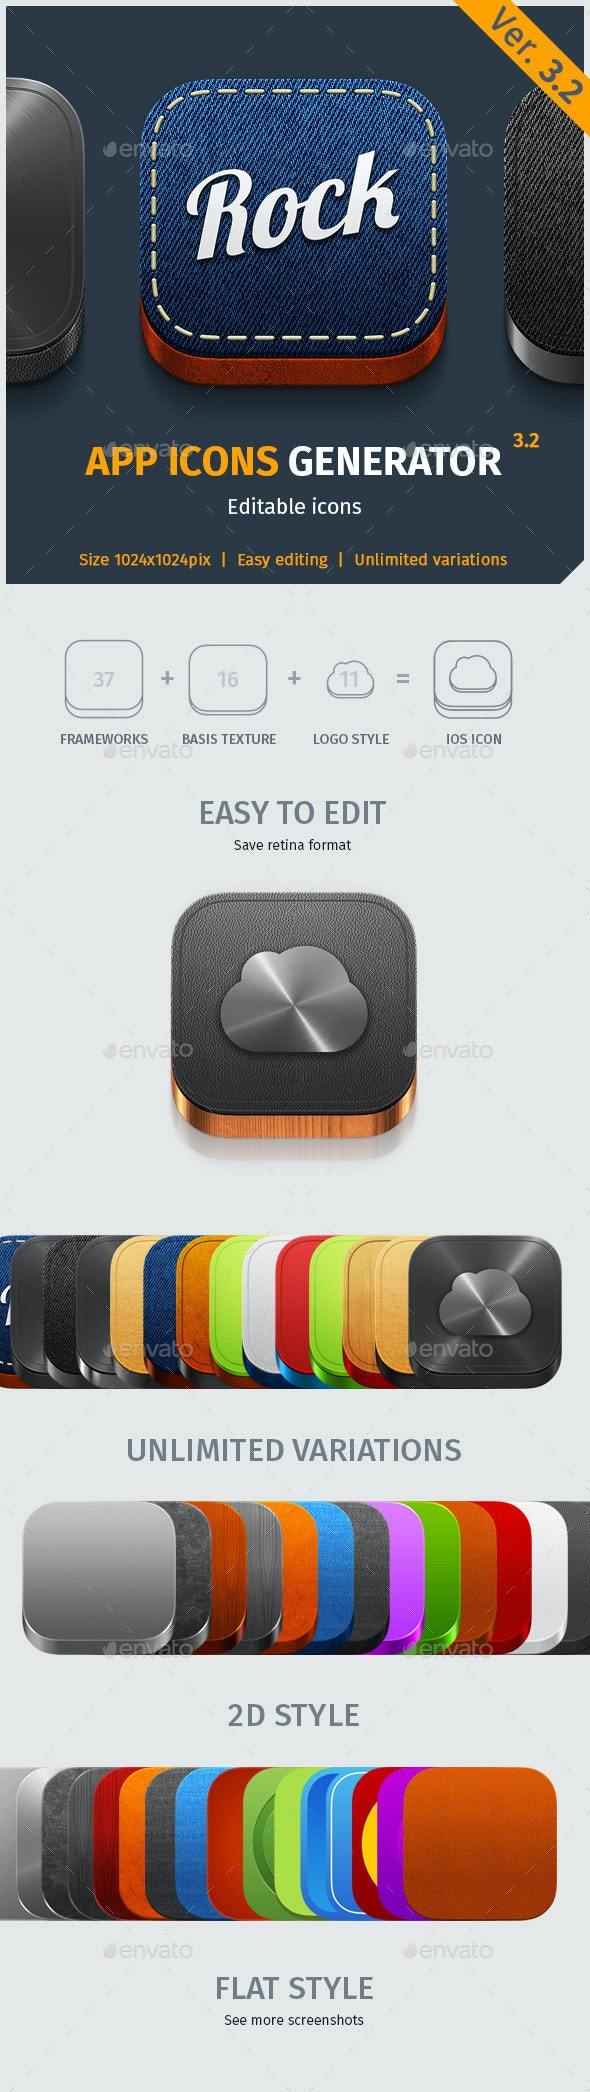 App Icon Generator V.3.2 - Software Icons